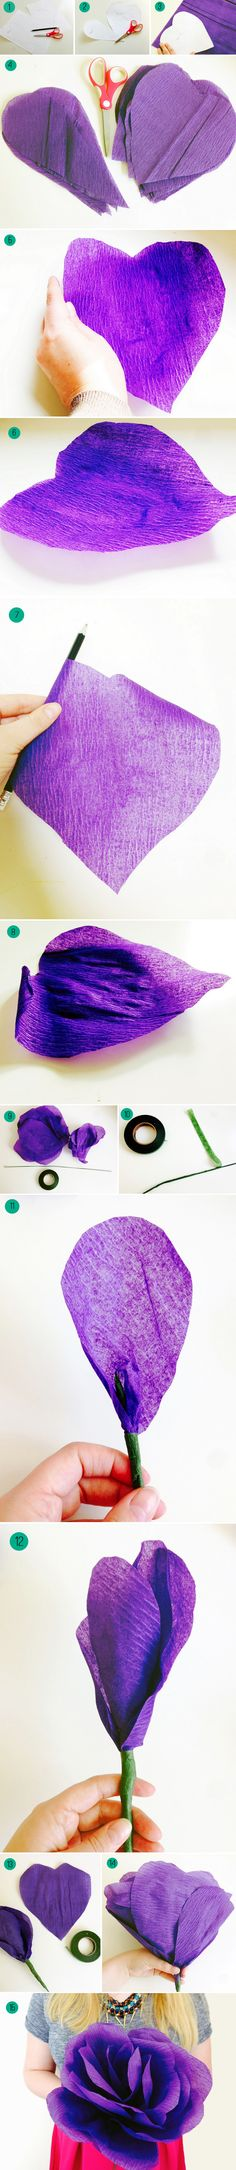 Steps for paper roses DIY by Bespoke Bride